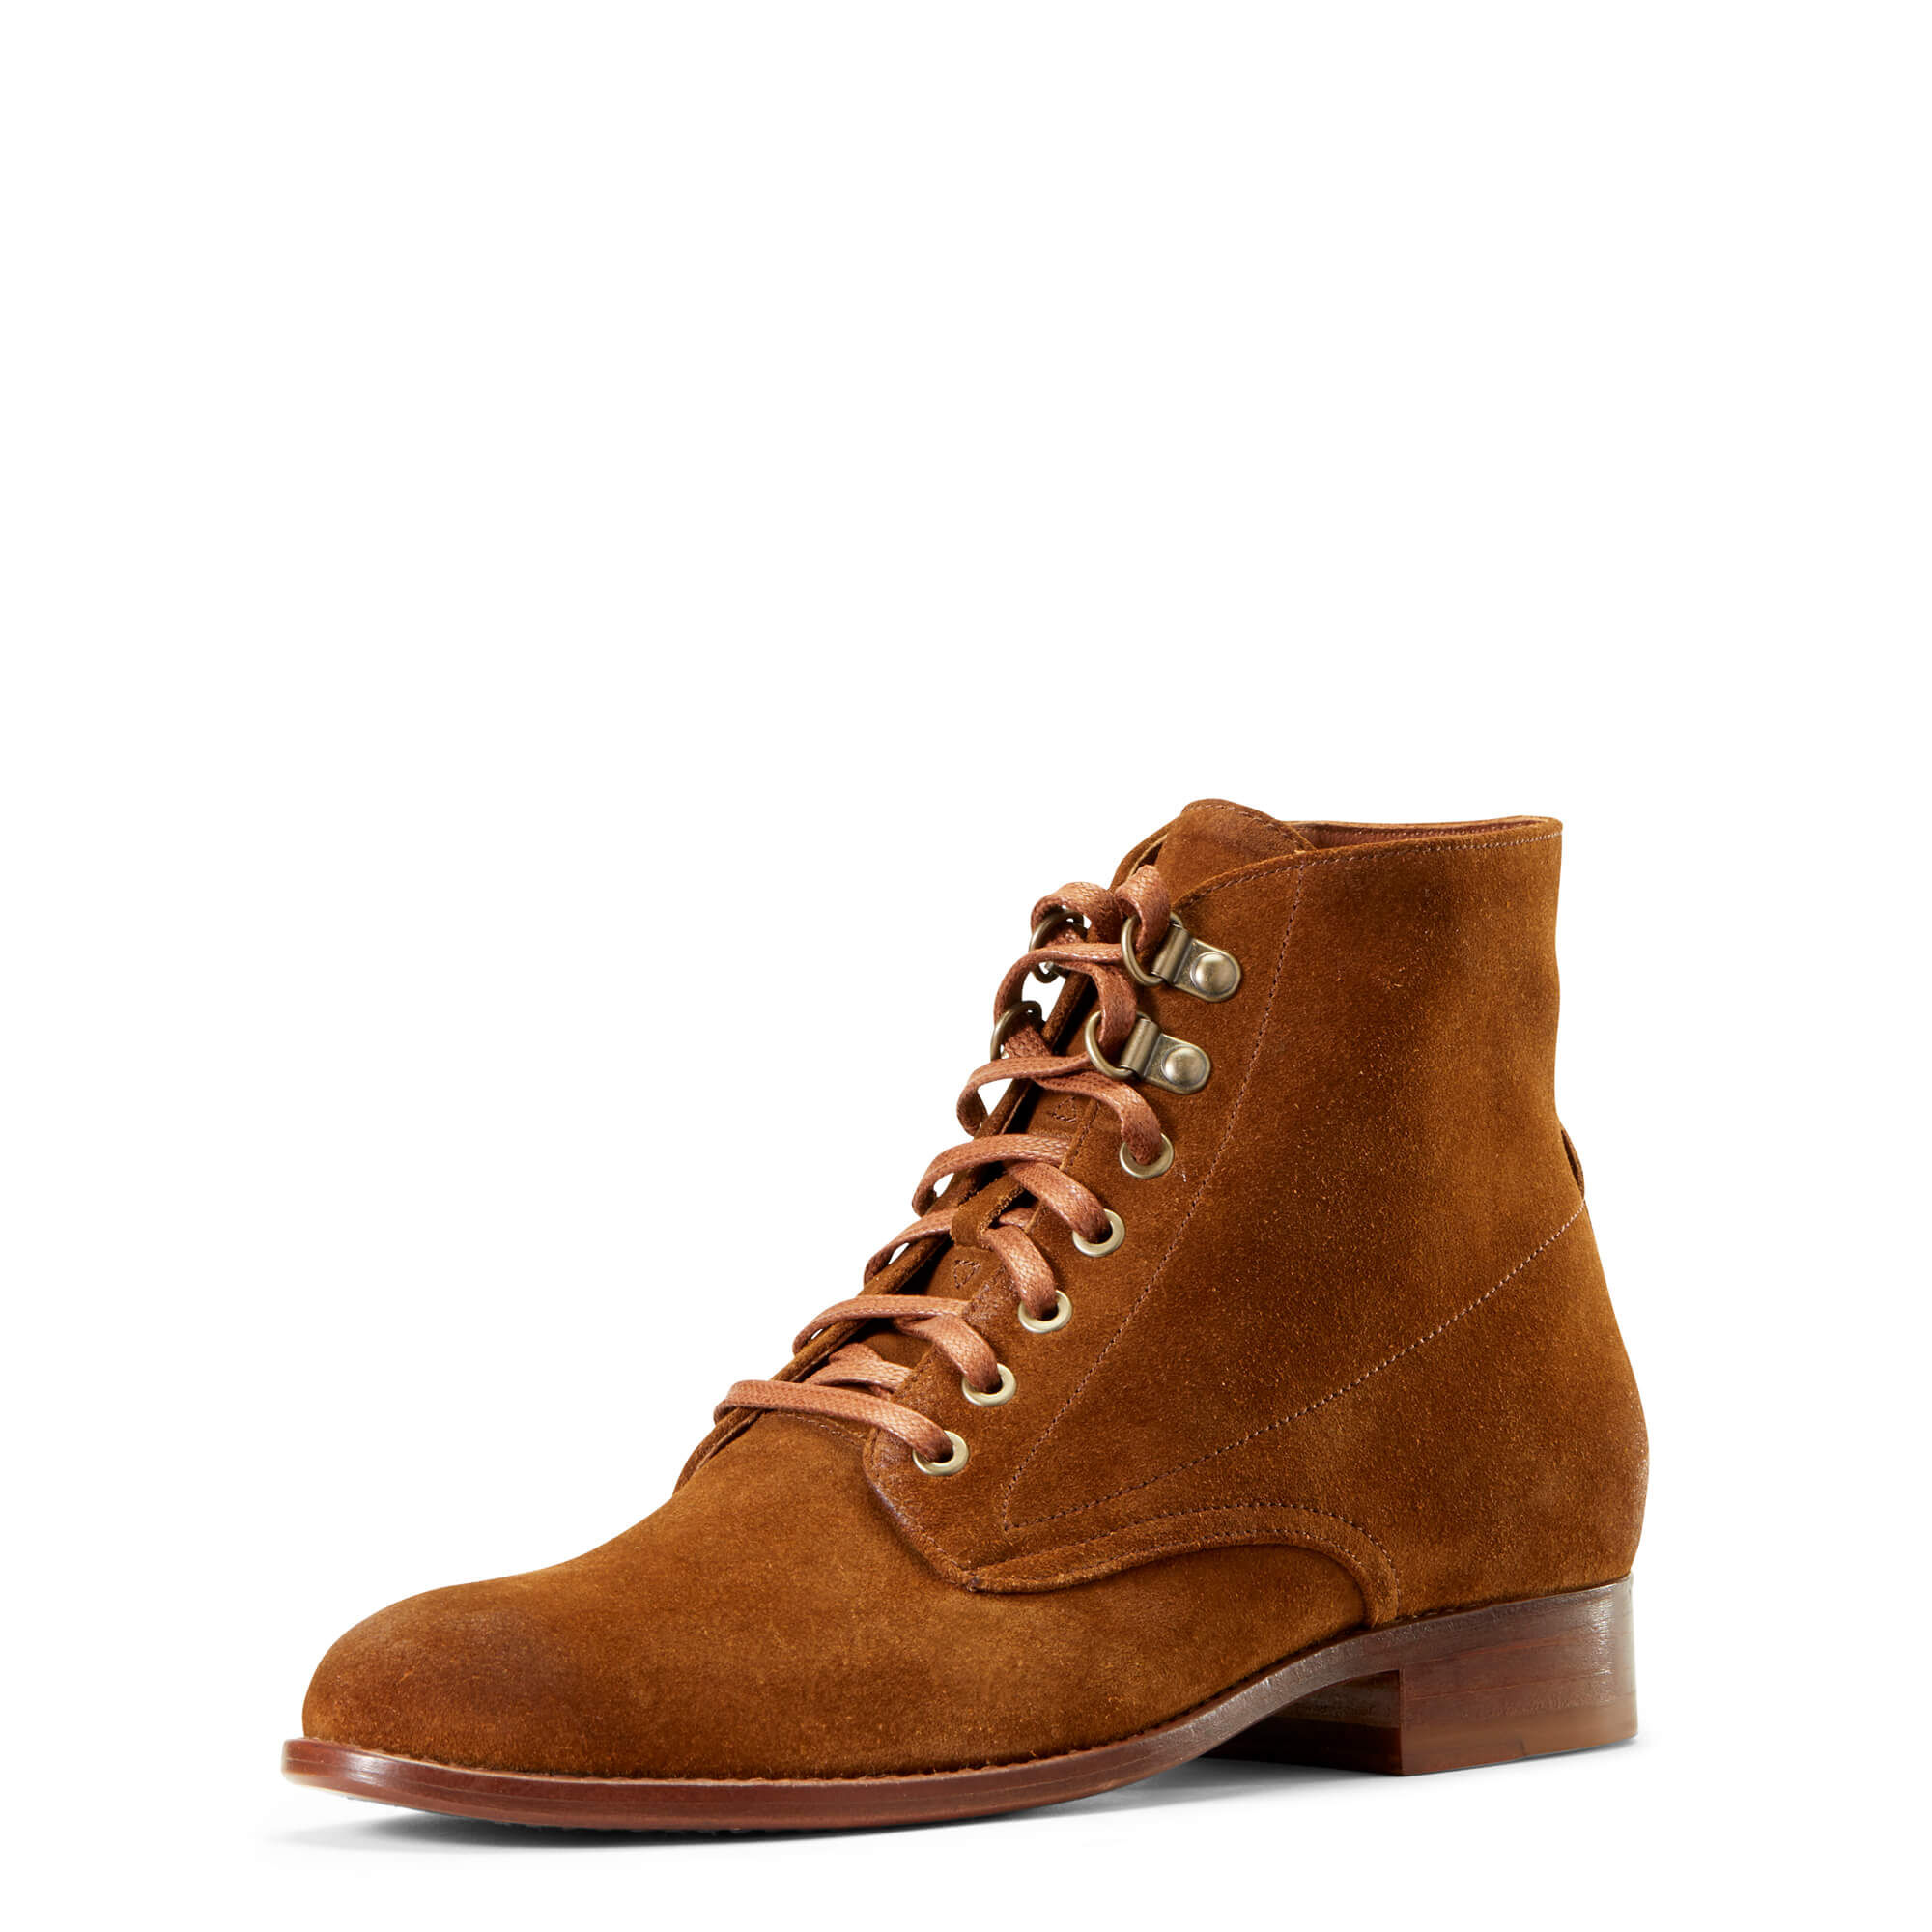 Women's Bancroft Ankle Boots in Saddle Suede Leather by Ariat Two24